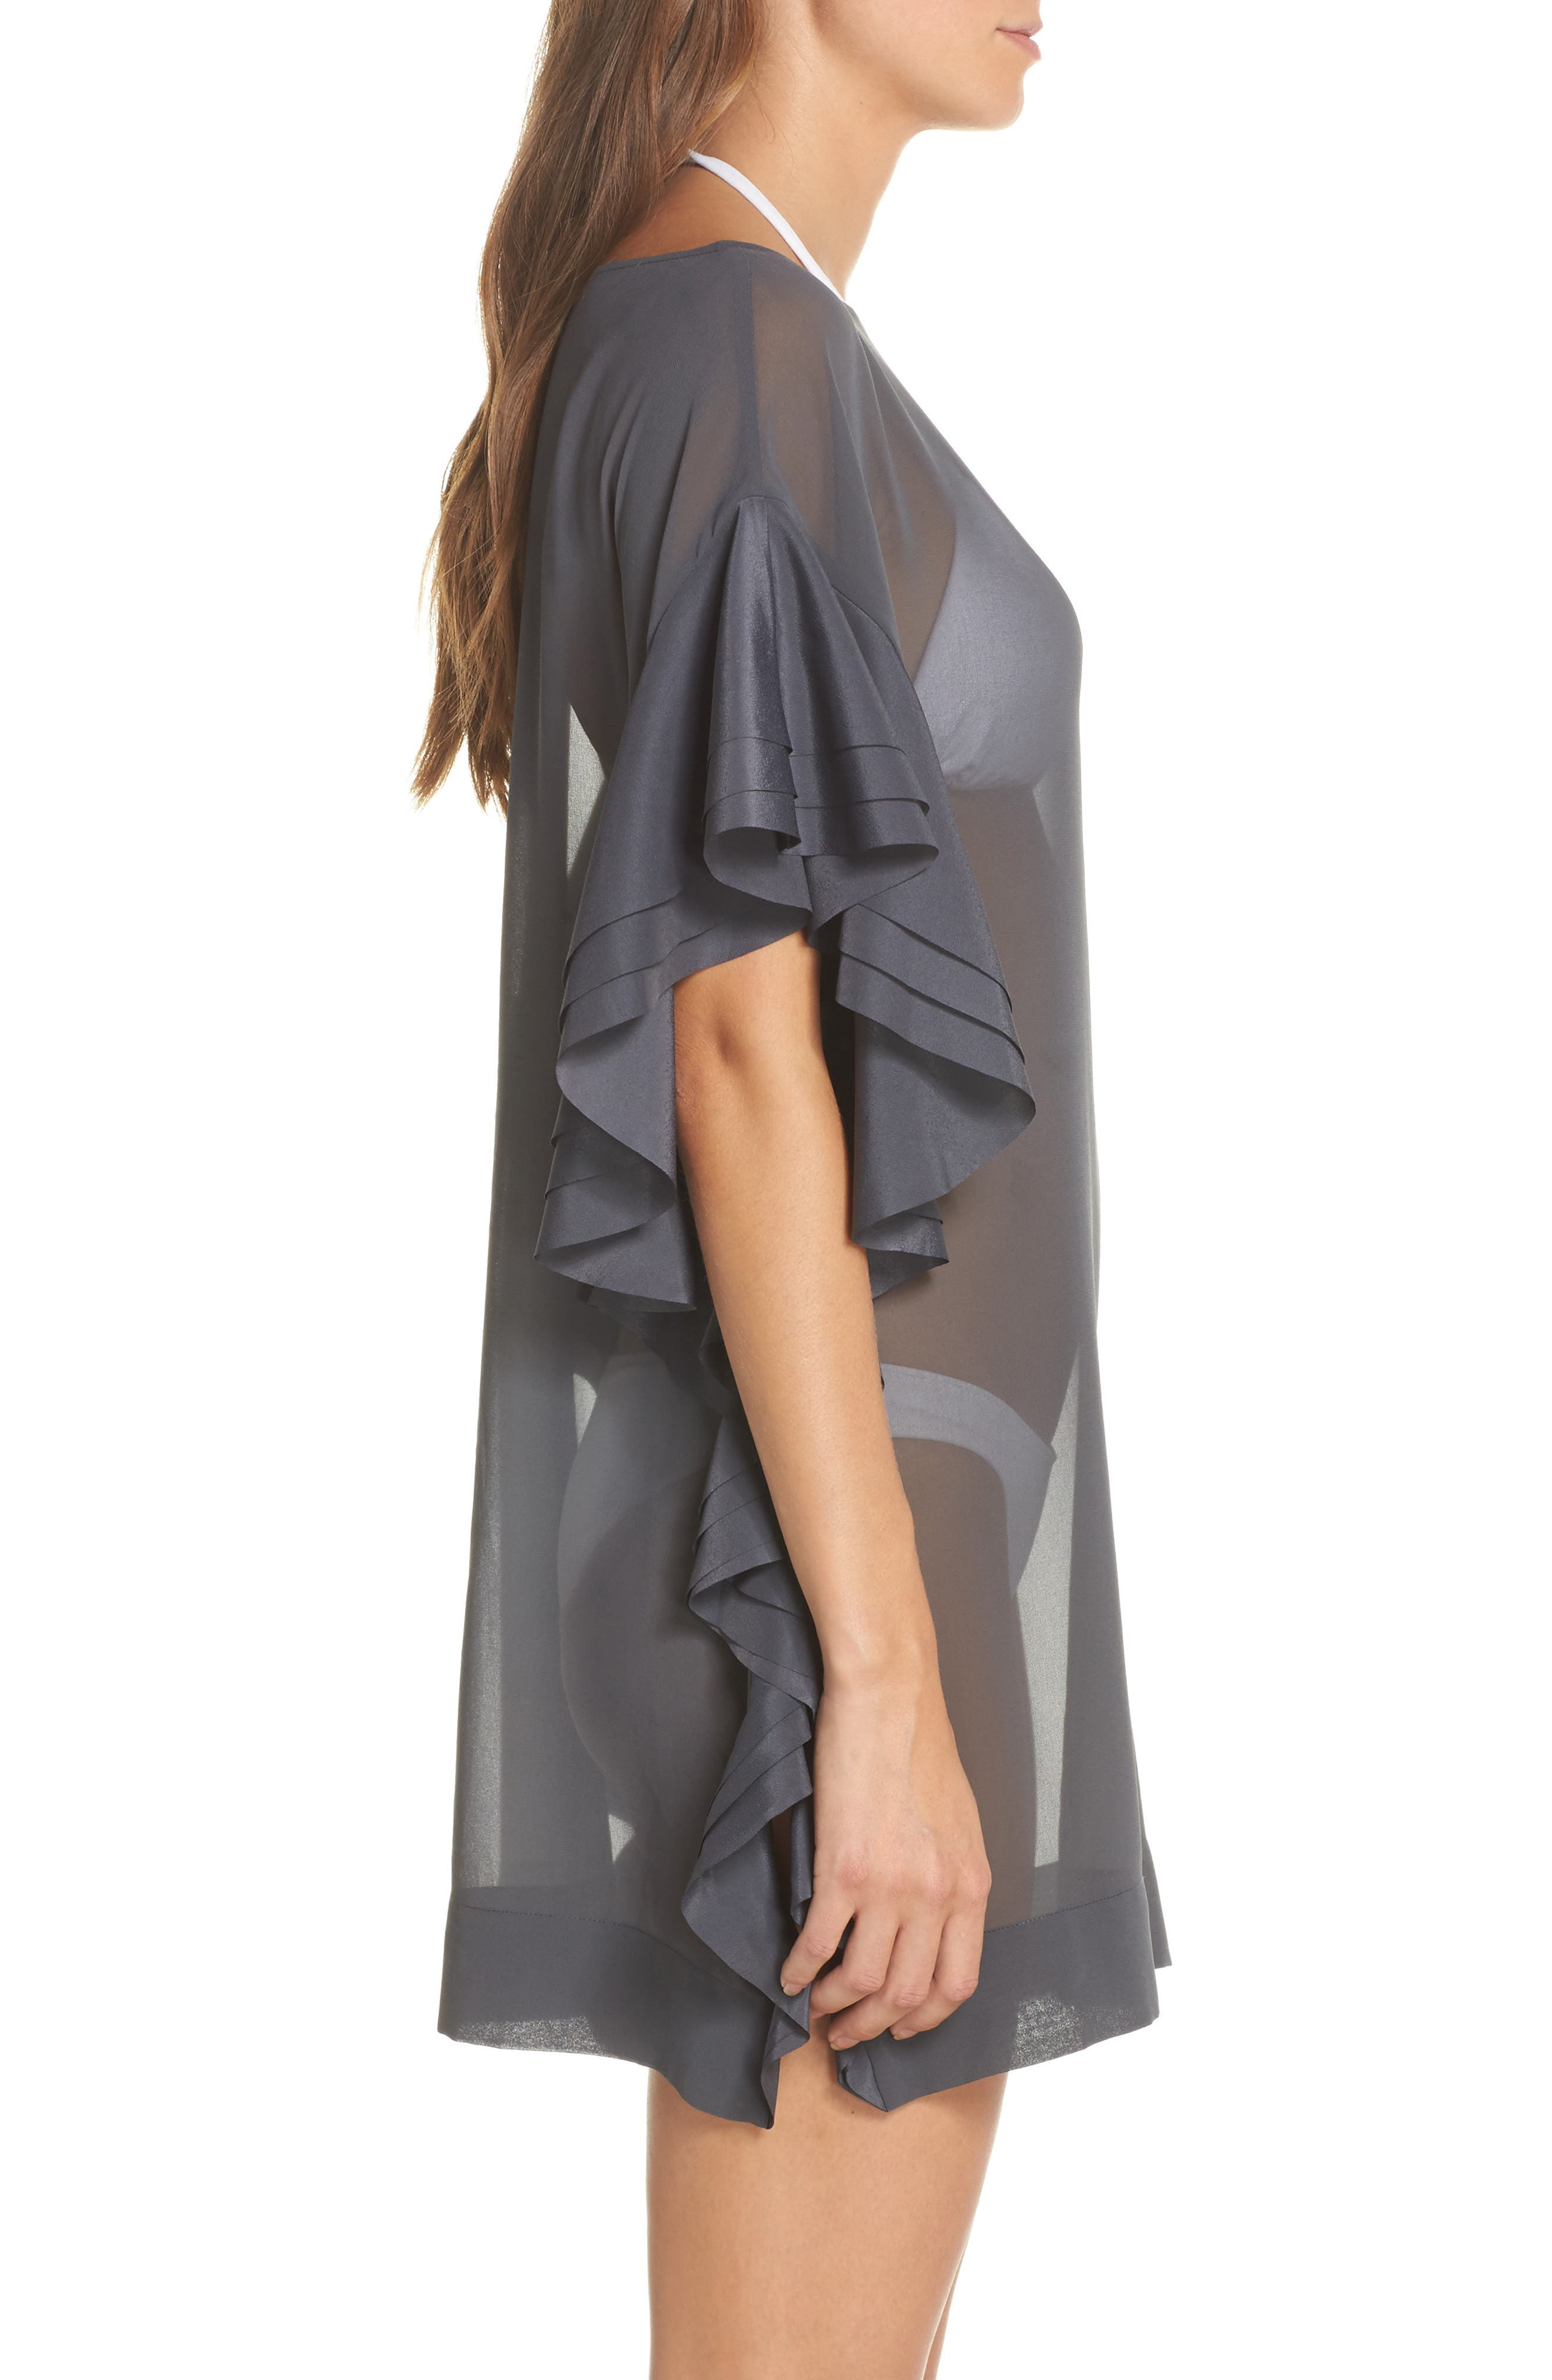 TED BAKER LONDON, Ruffle Square Cover-Up Dress, Alternate thumbnail 3, color, 030